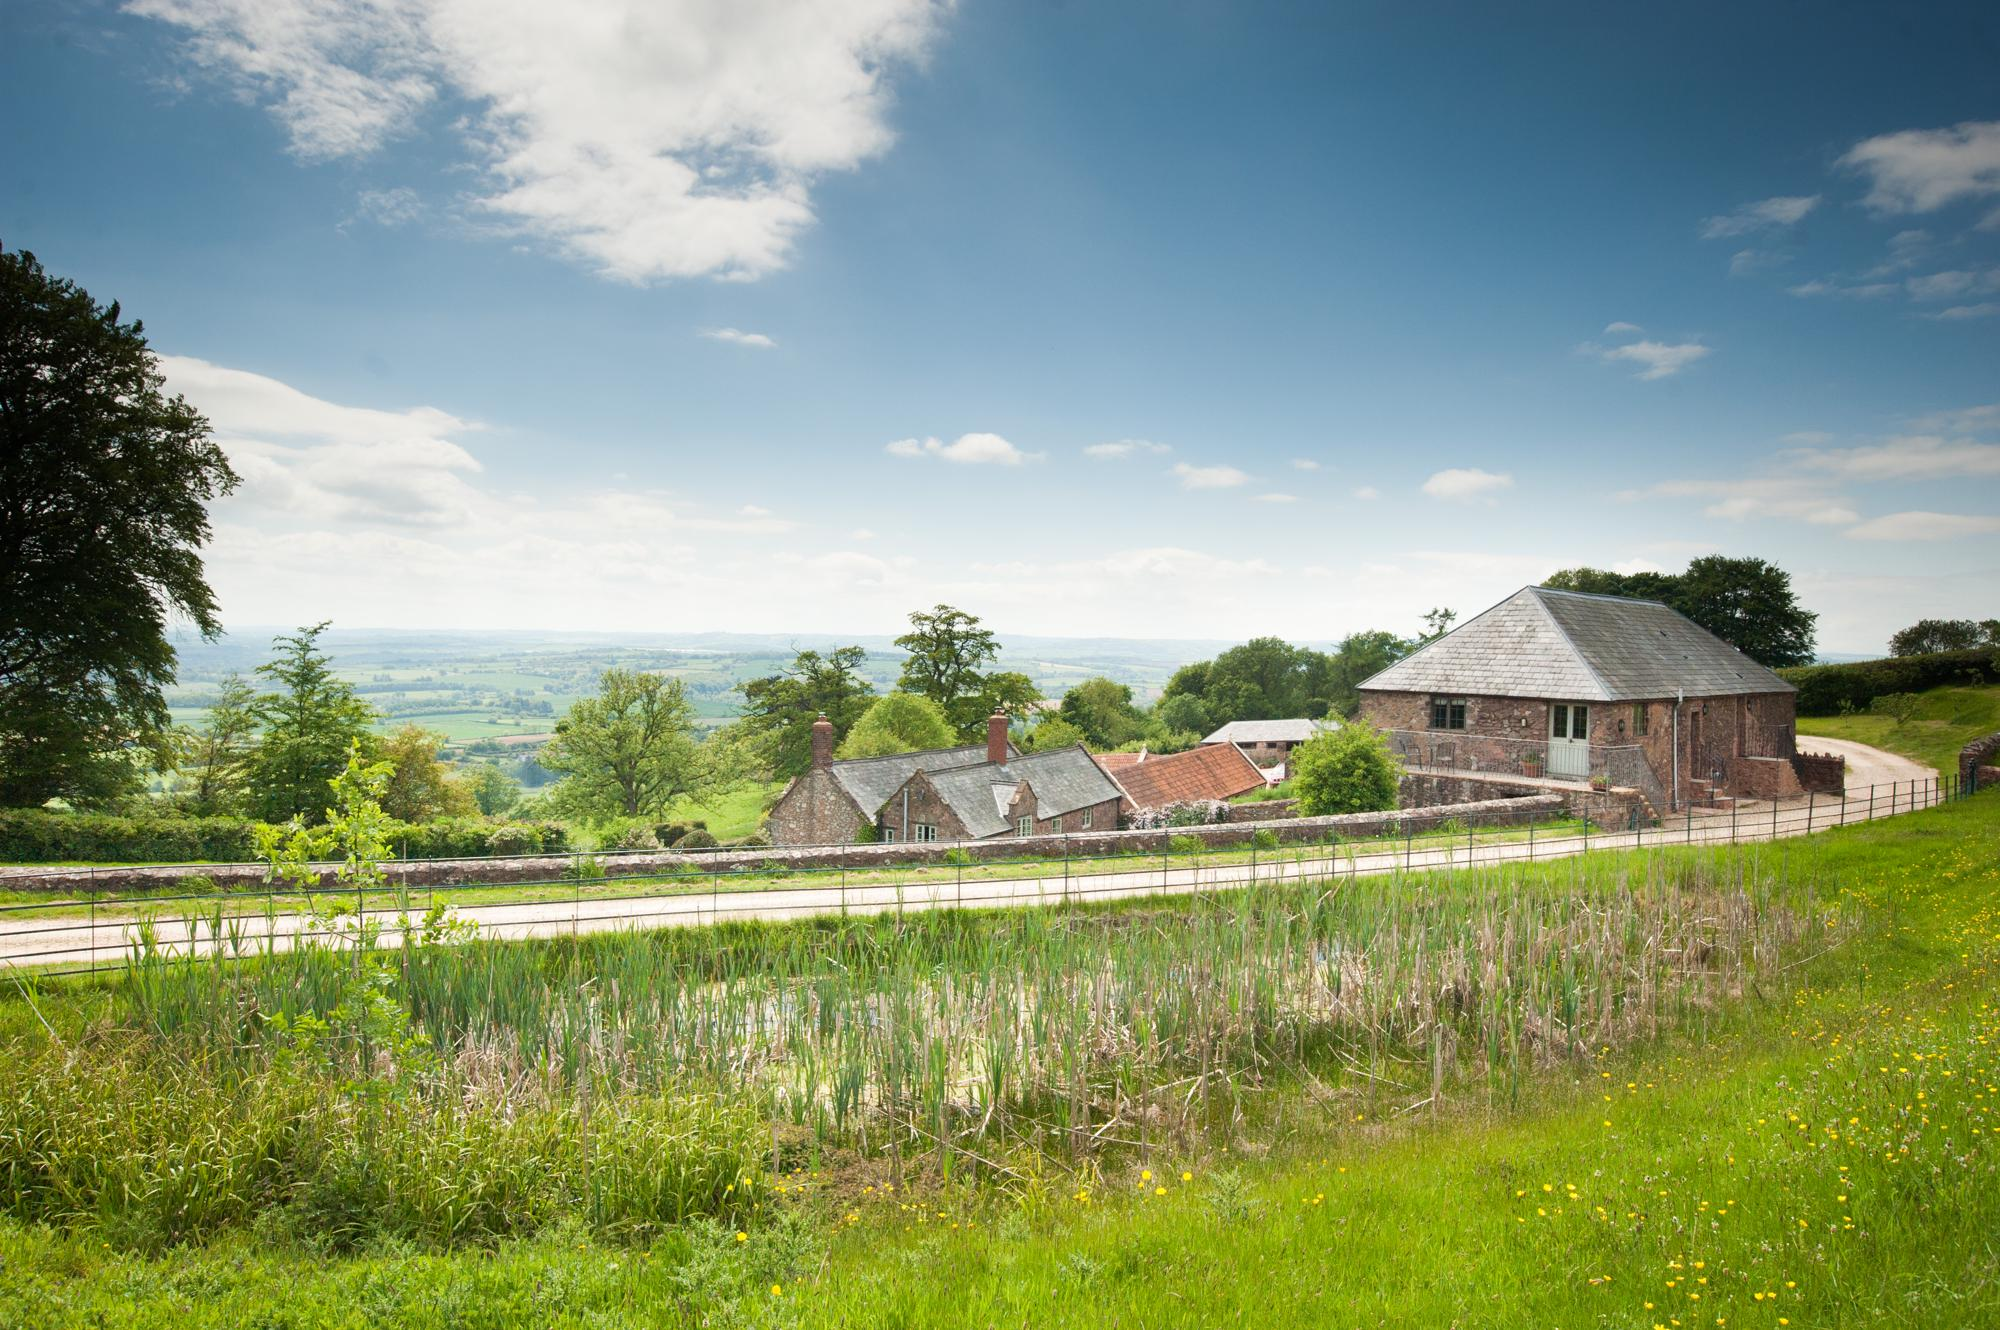 Self-Catering in Taunton holidays at Cool Places